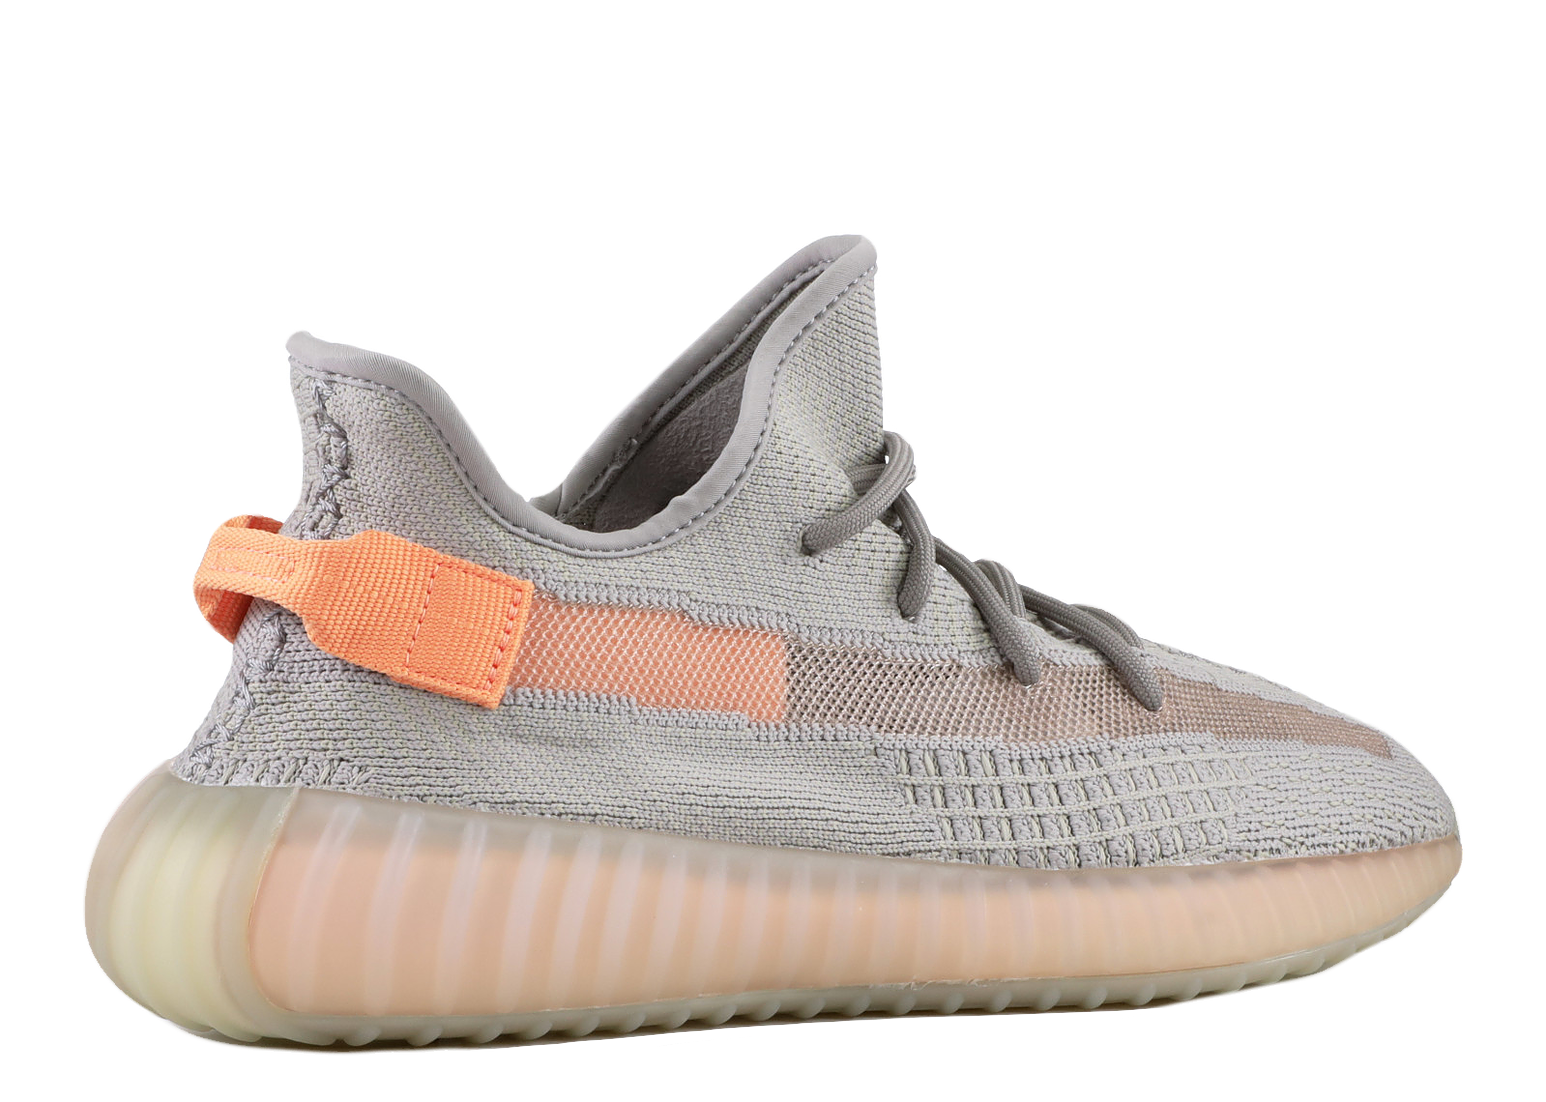 ADIDAS YEEZY BOOST 350 V2 'TRFRM' – Copit